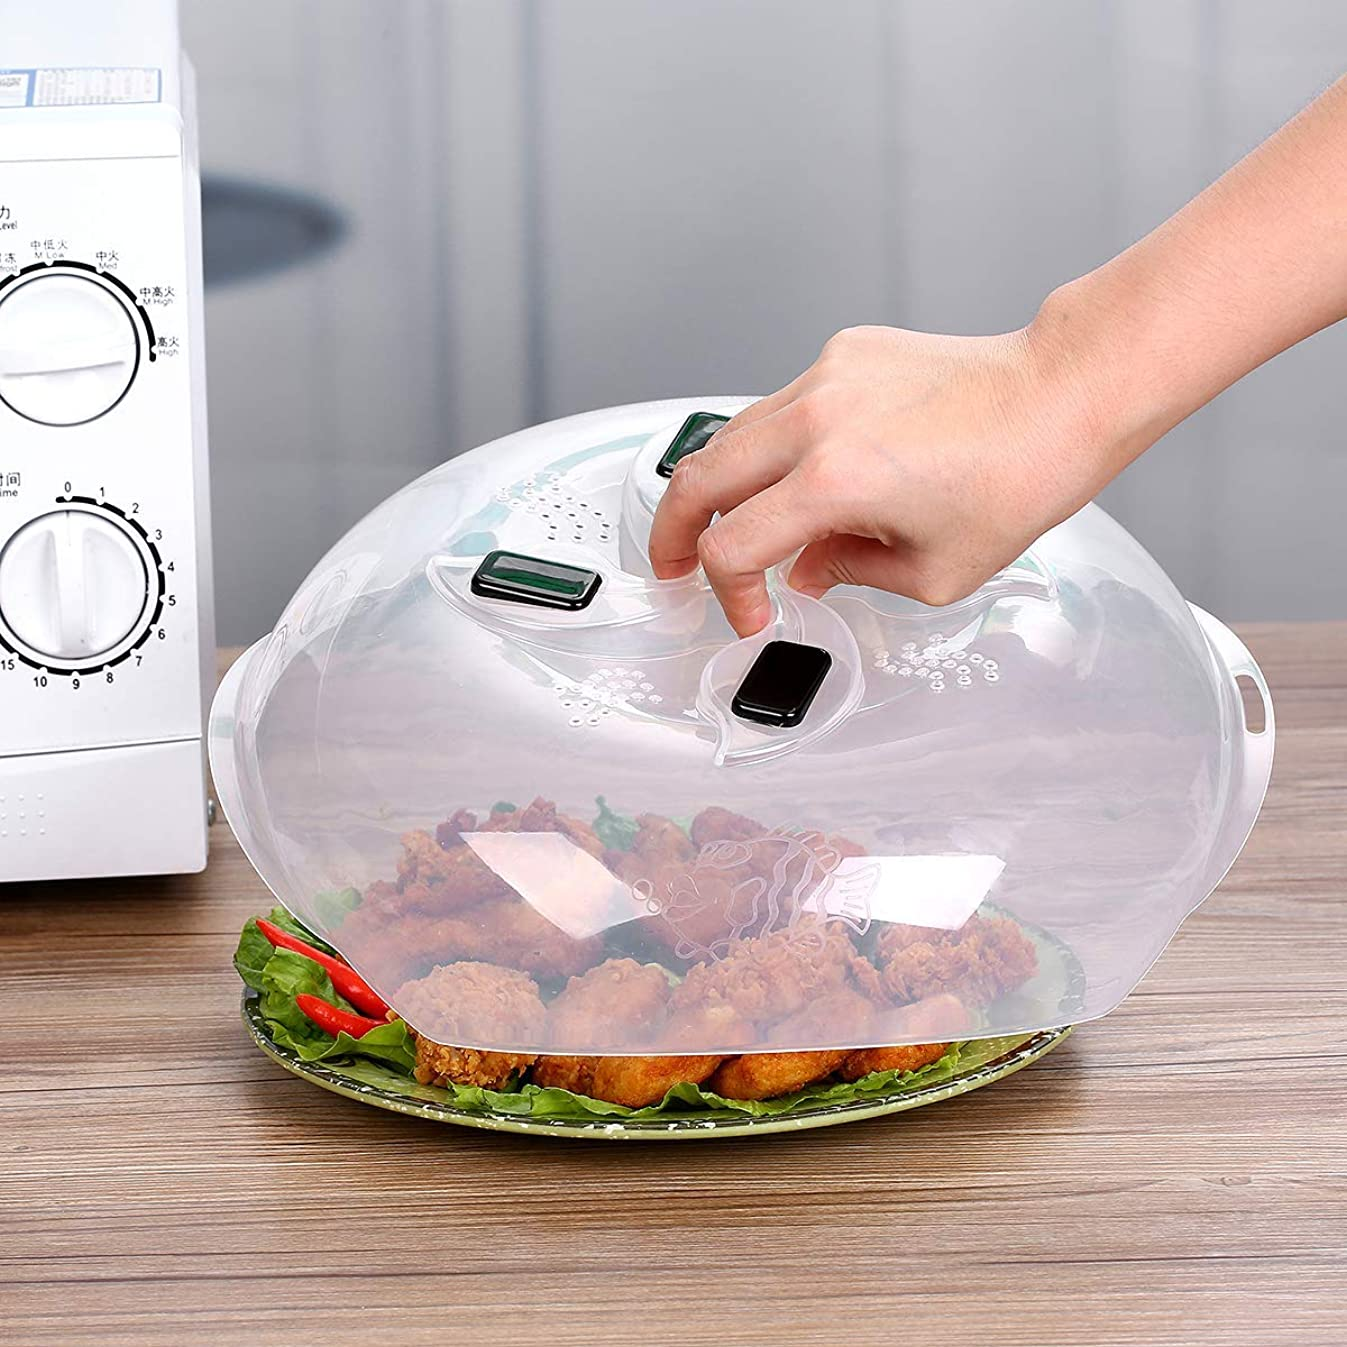 Microwave Plate Cover - Magnetic Hover Function | Microwave Lid Food Cover | Magnetic Microwave Splatter Lid with Steam Vents | 11.8 Inch & BPA-Free (Black)